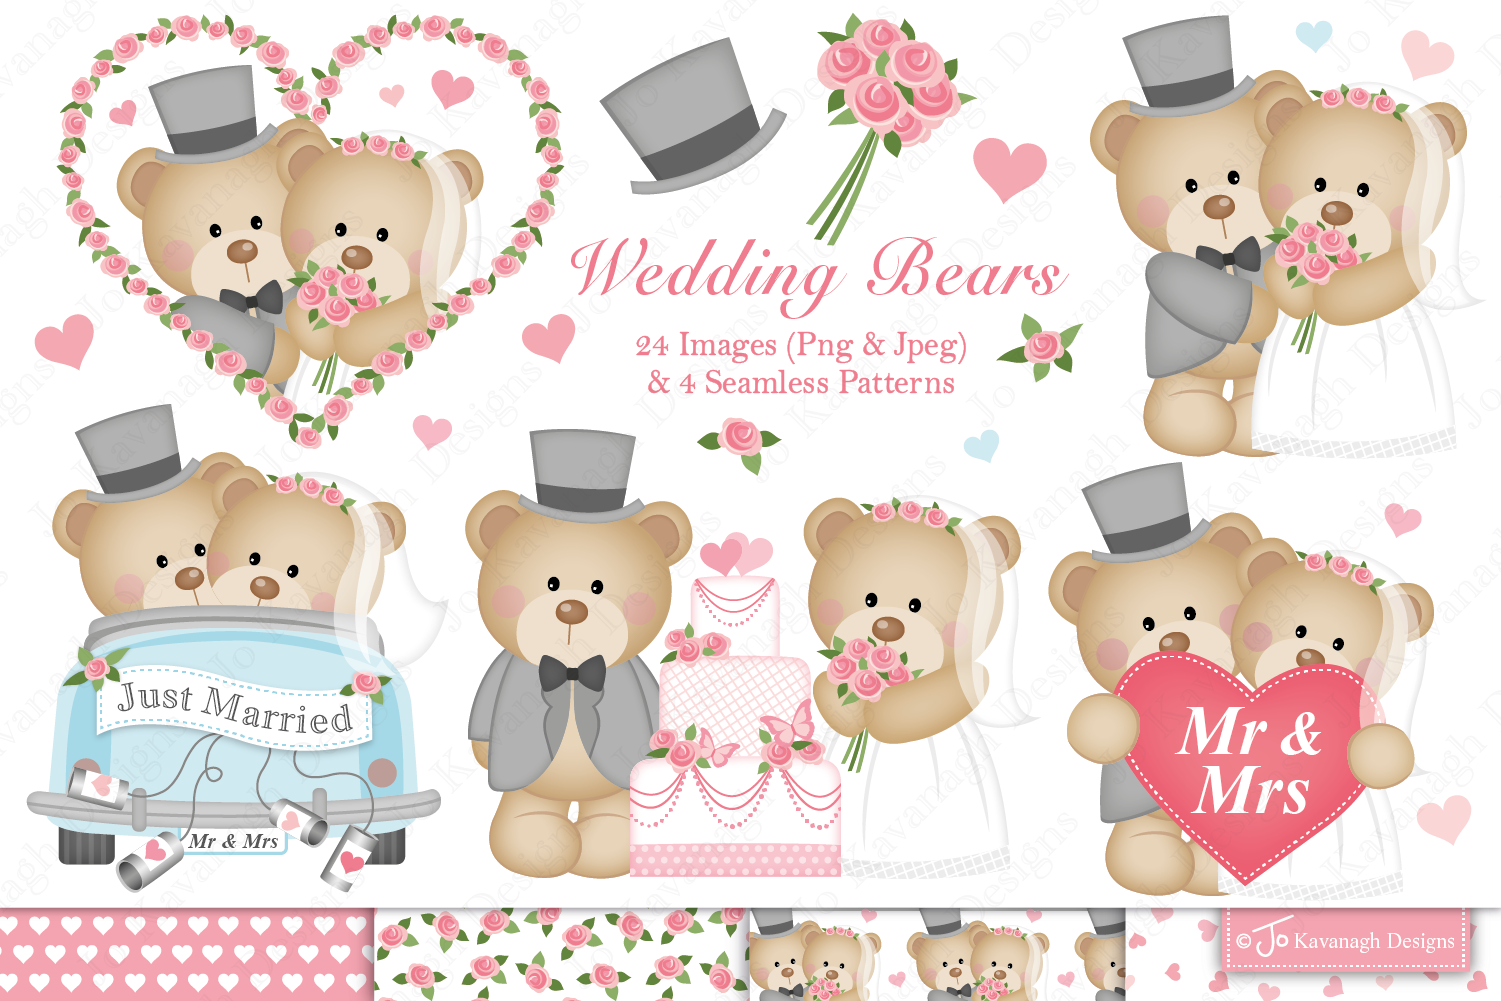 Clipart bear wedding graphic library download Wedding bears clipart -C34 graphic library download